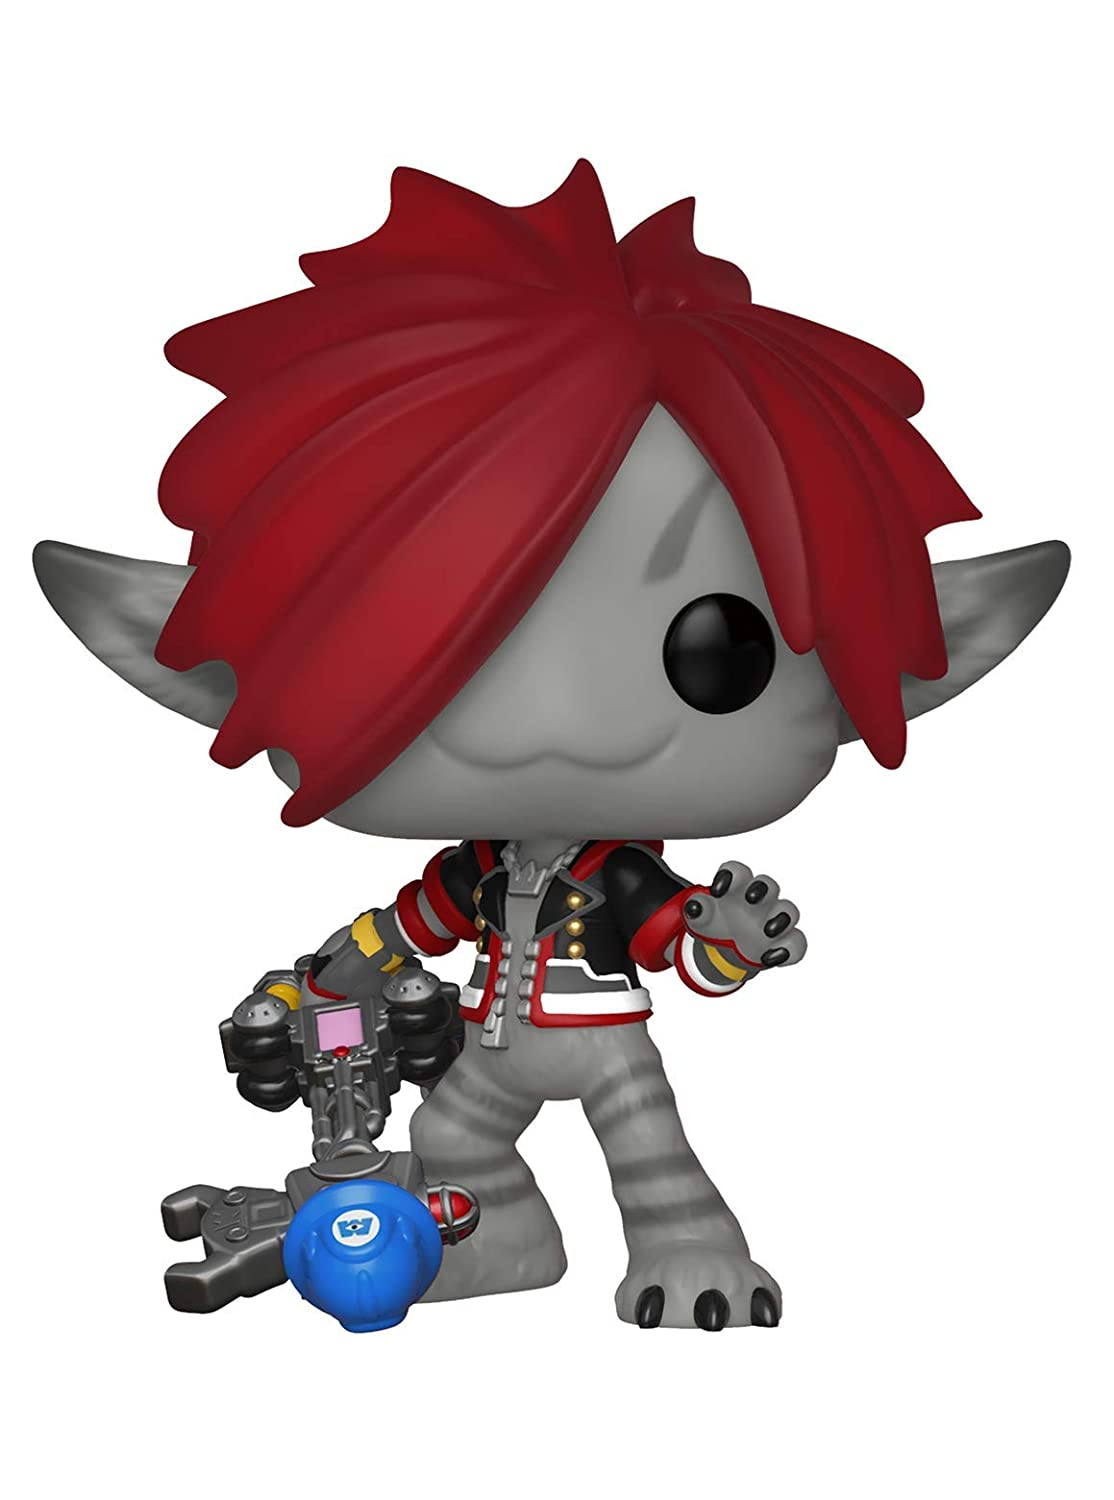 Funko Pop Disney: Kingdom Hearts 3 - Sora (Monster's Inc.) Collectible Figure, Multicolor 34057